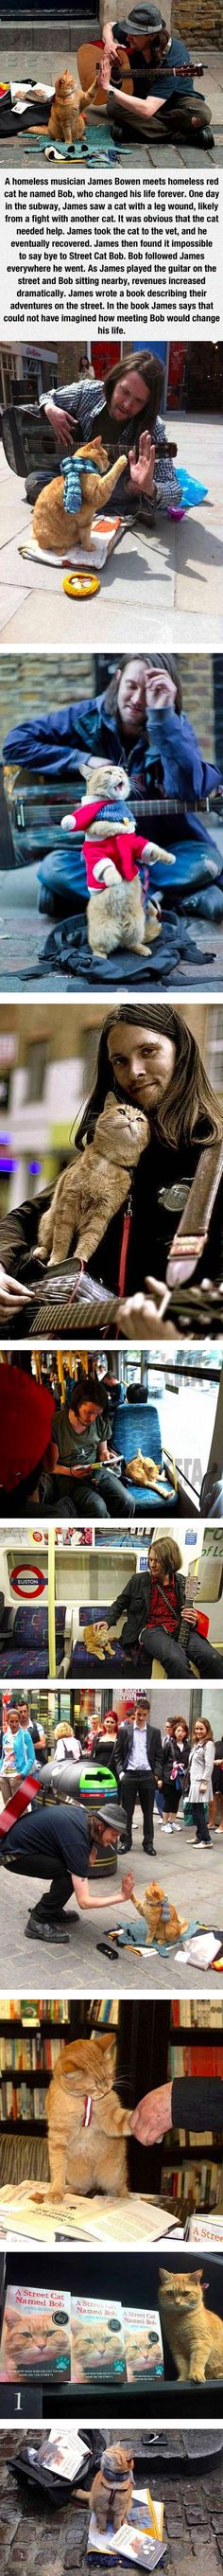 Homeless musician and his cat.